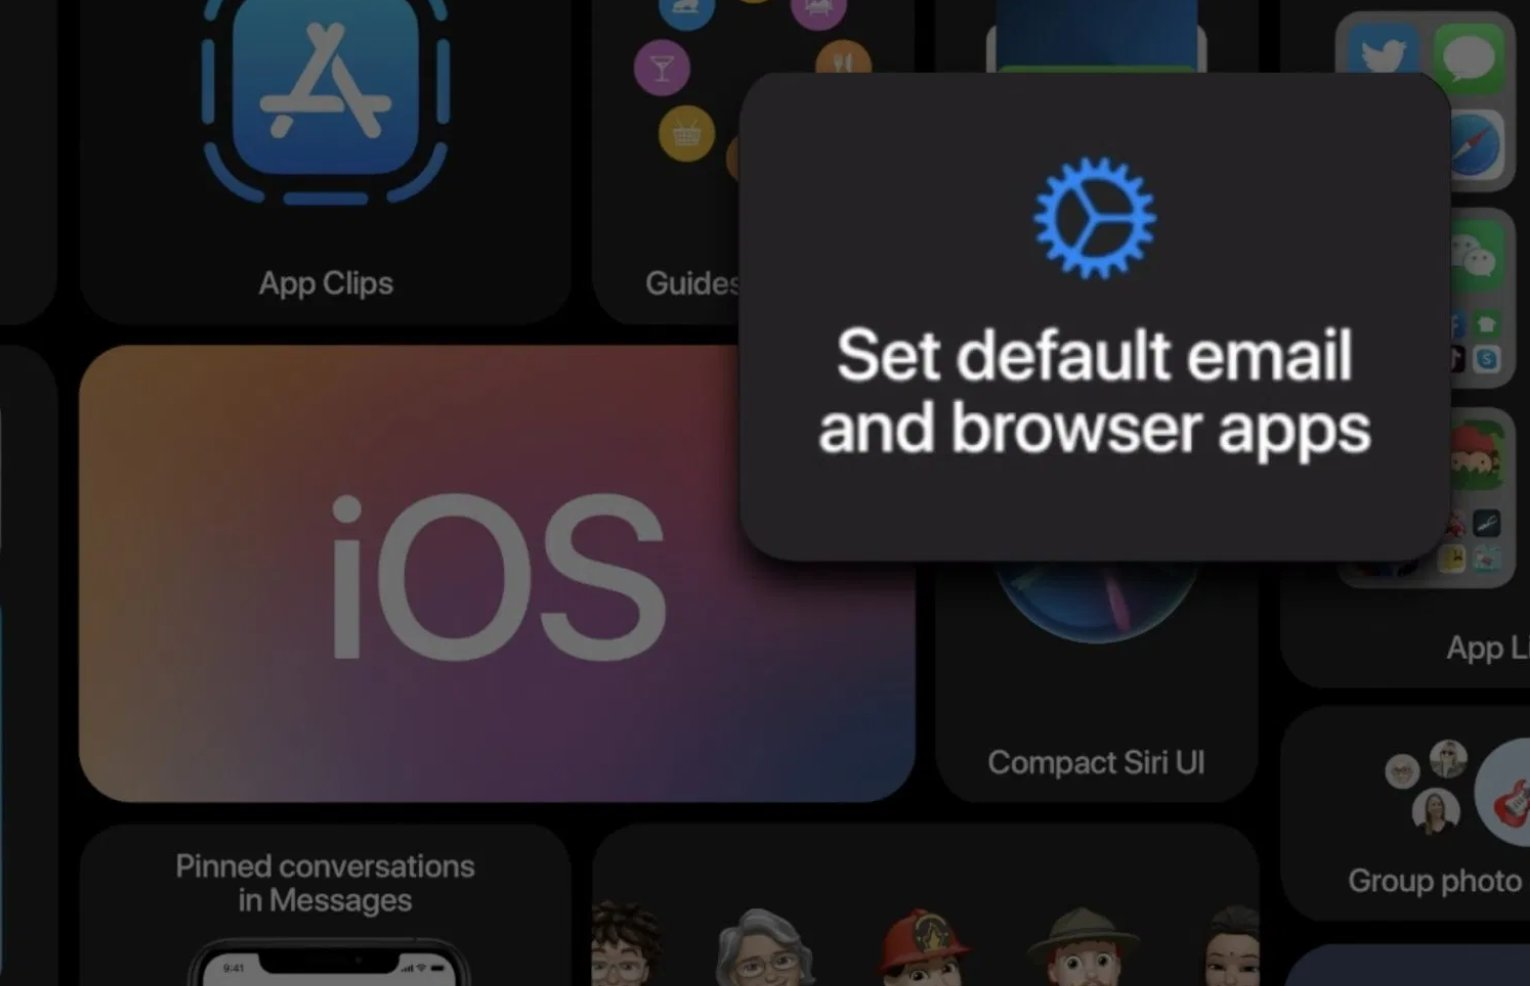 How to set a default mail app in iOS 14